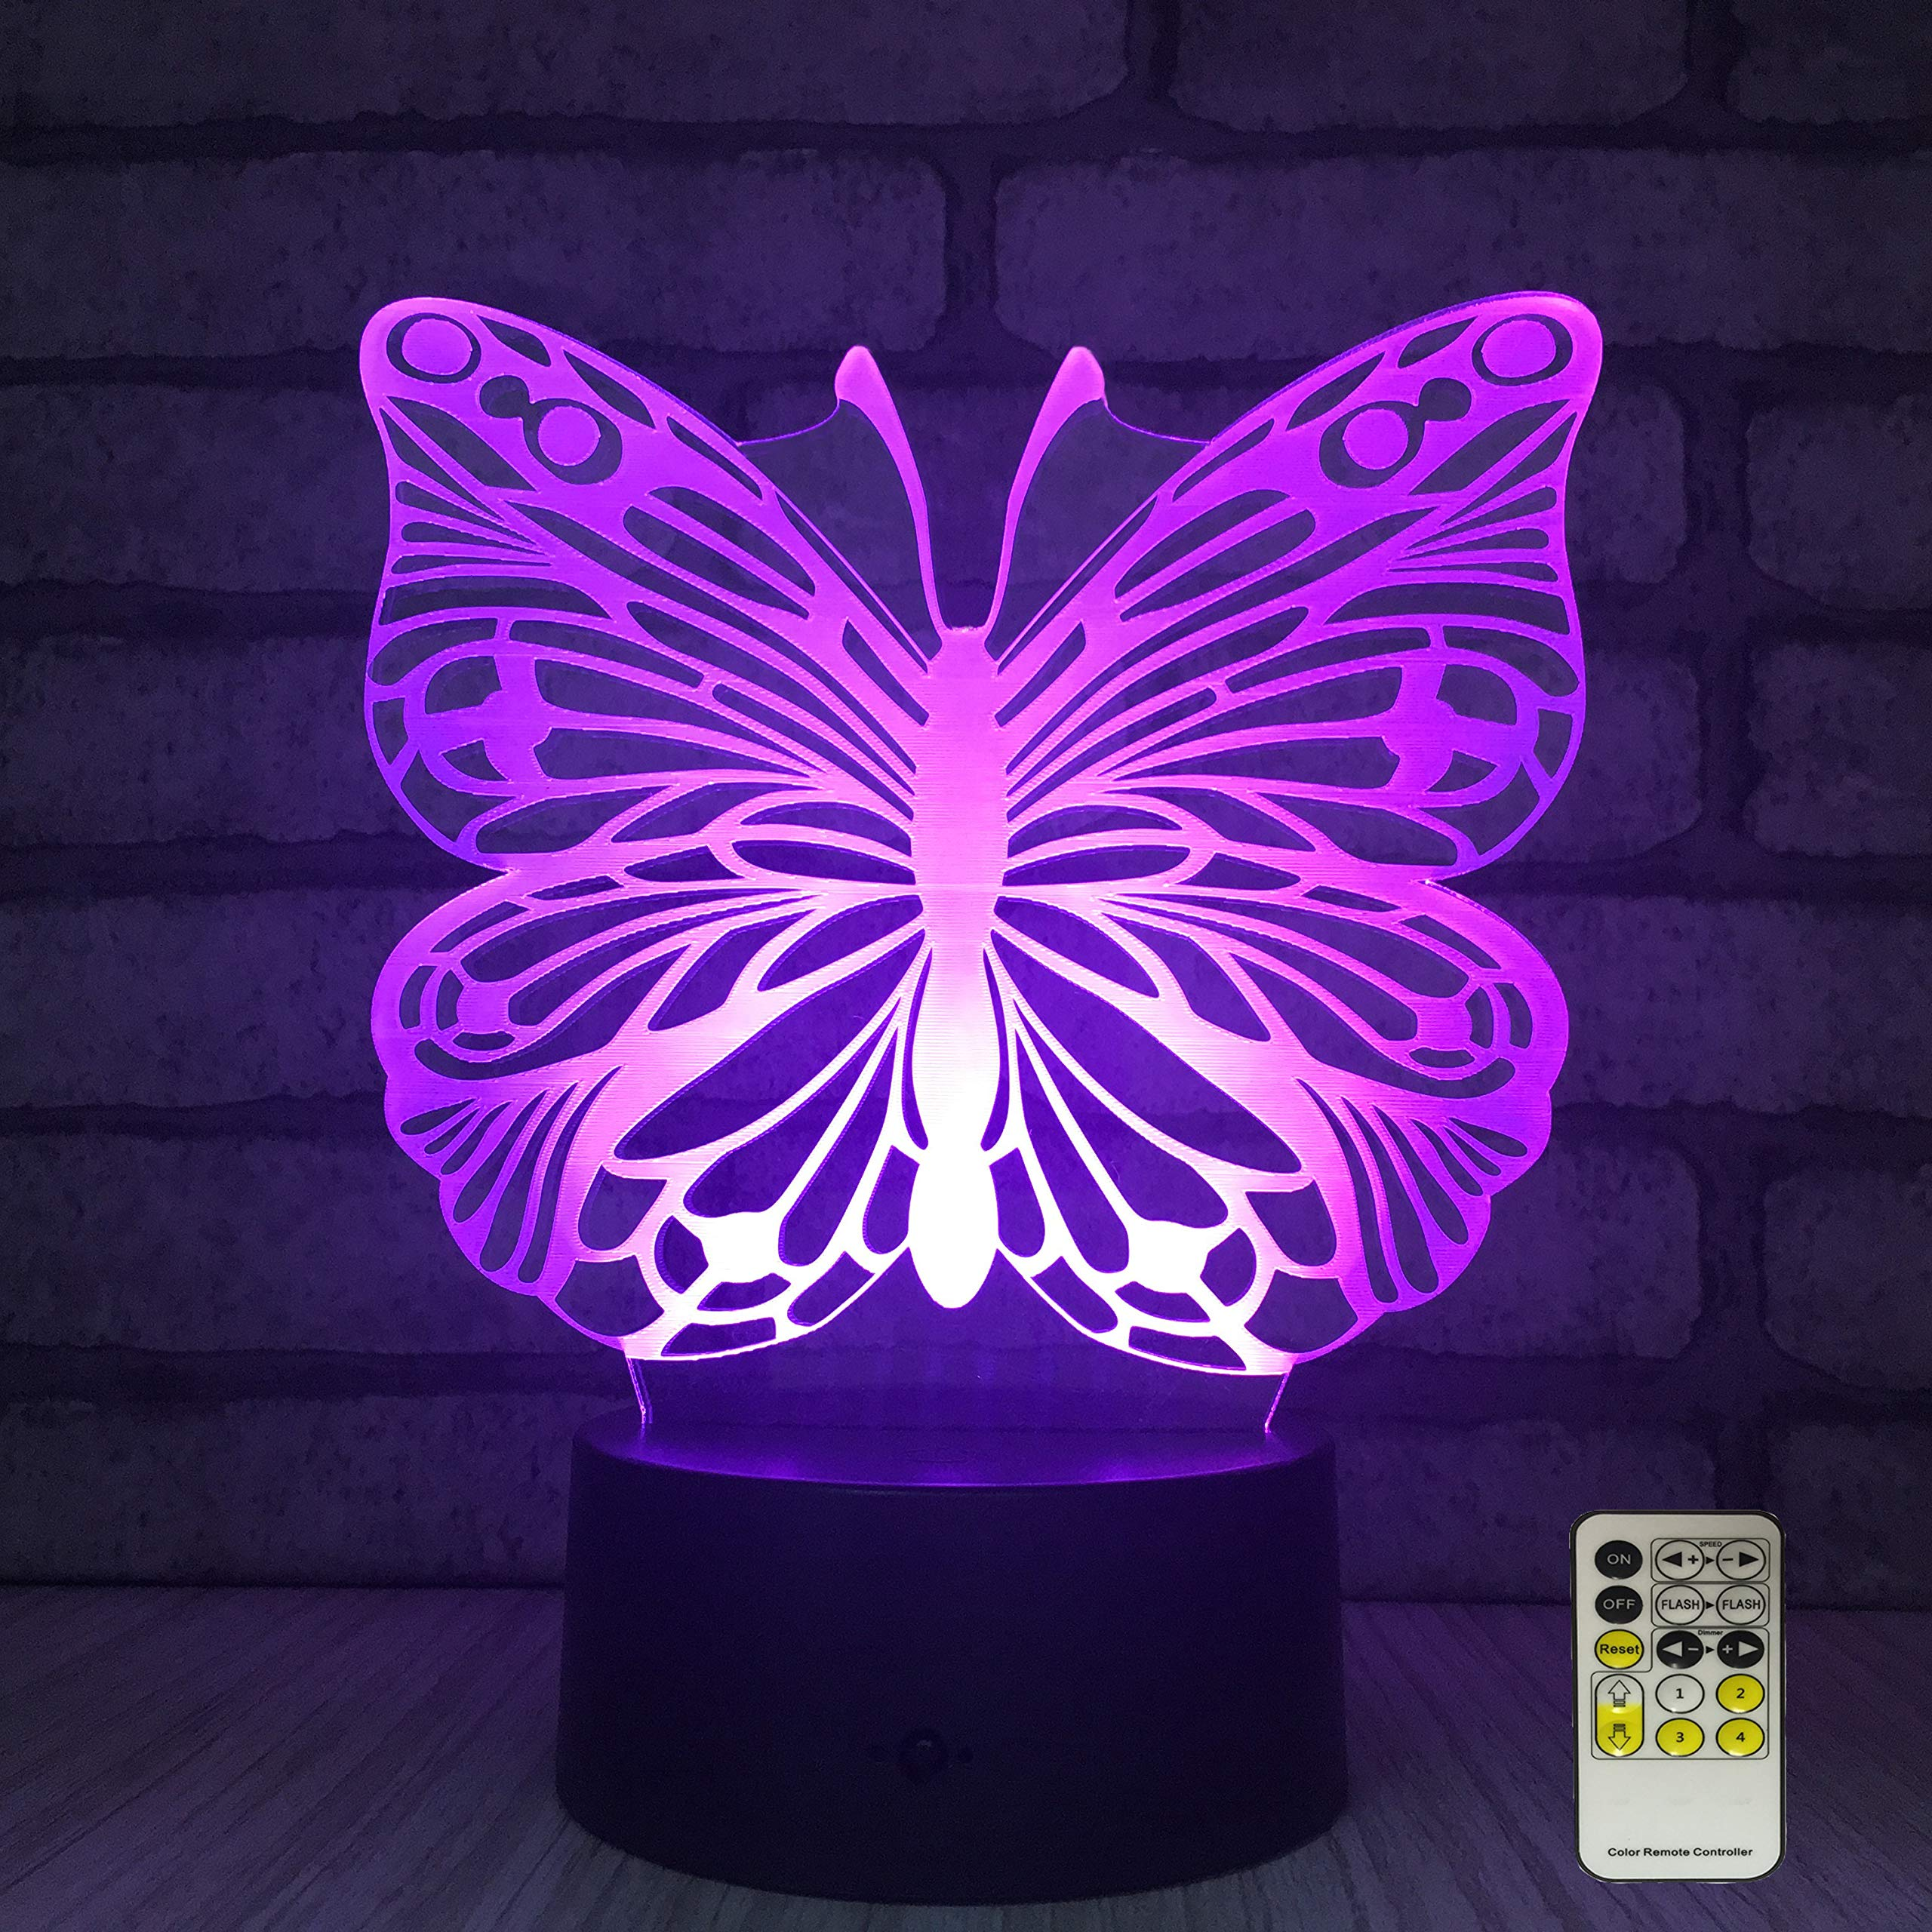 INSONJOHY 3D Butterfly Night Light,Kids Night Light with Touch and Remote Control 7 Colors Lamp Holiday and Birthday Gifts Ideas for Girls or Kids Room Décor (Butterfly)